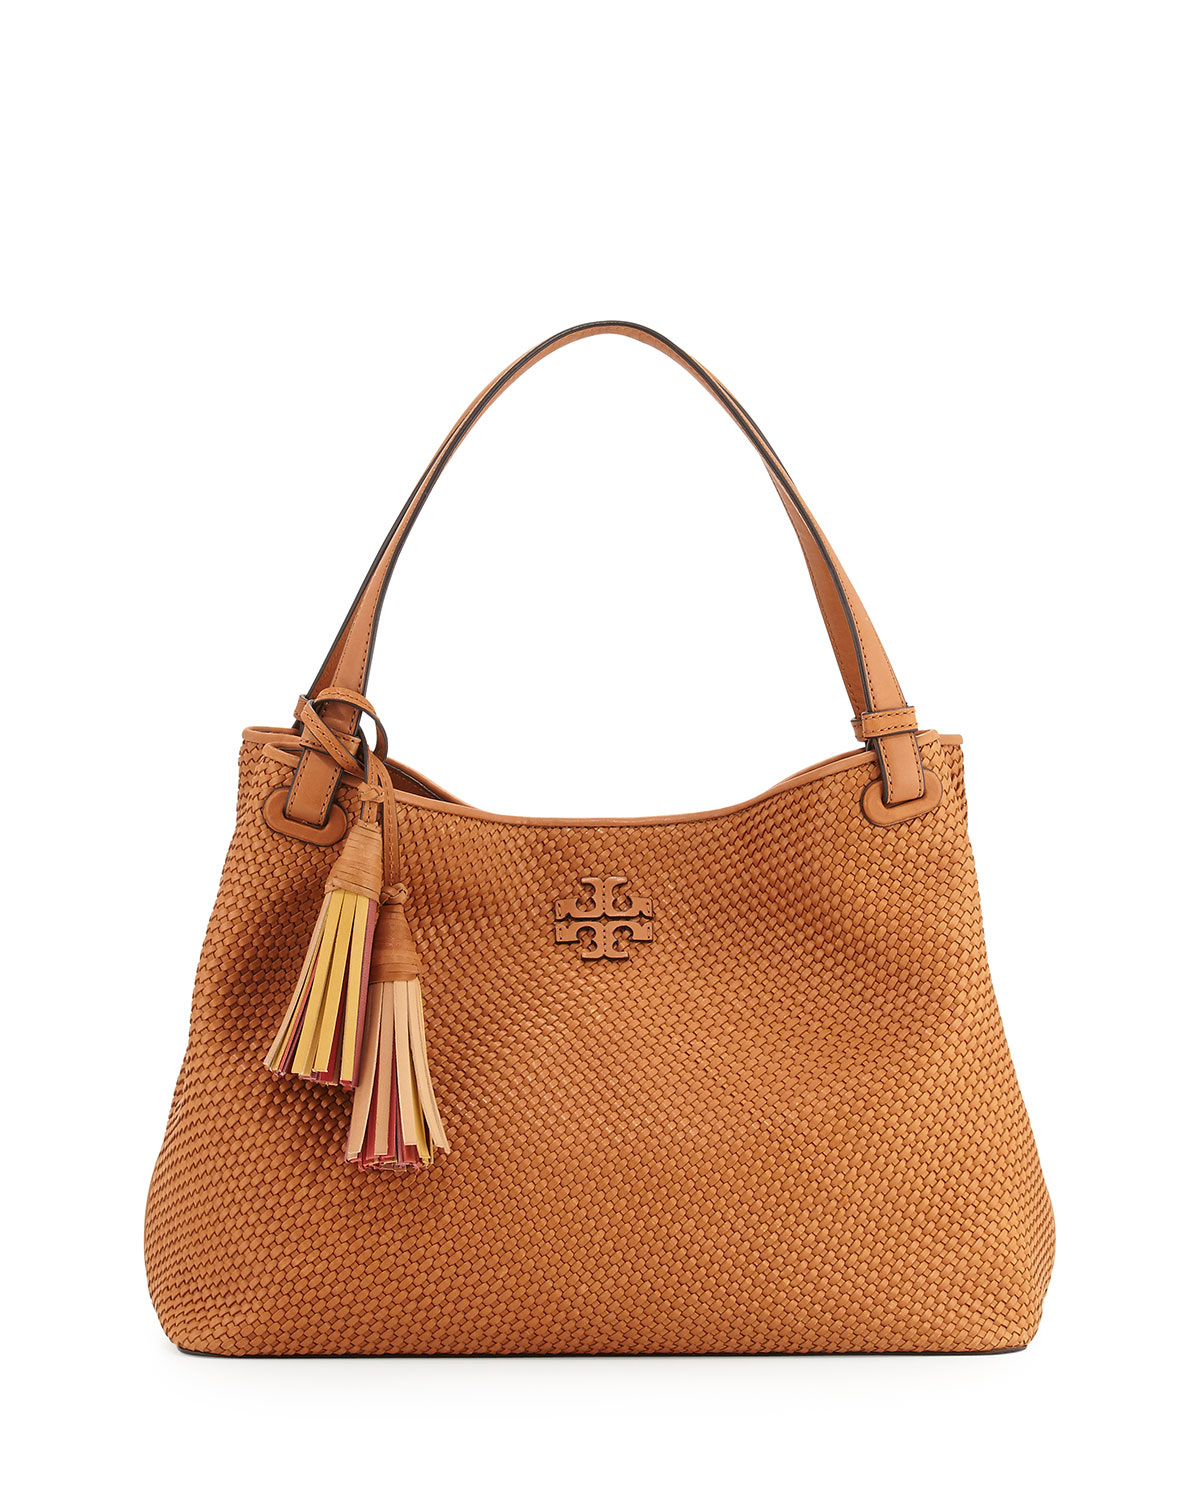 Thea Woven Leather Tote Bag, Peanut, Women's - Tory Burch